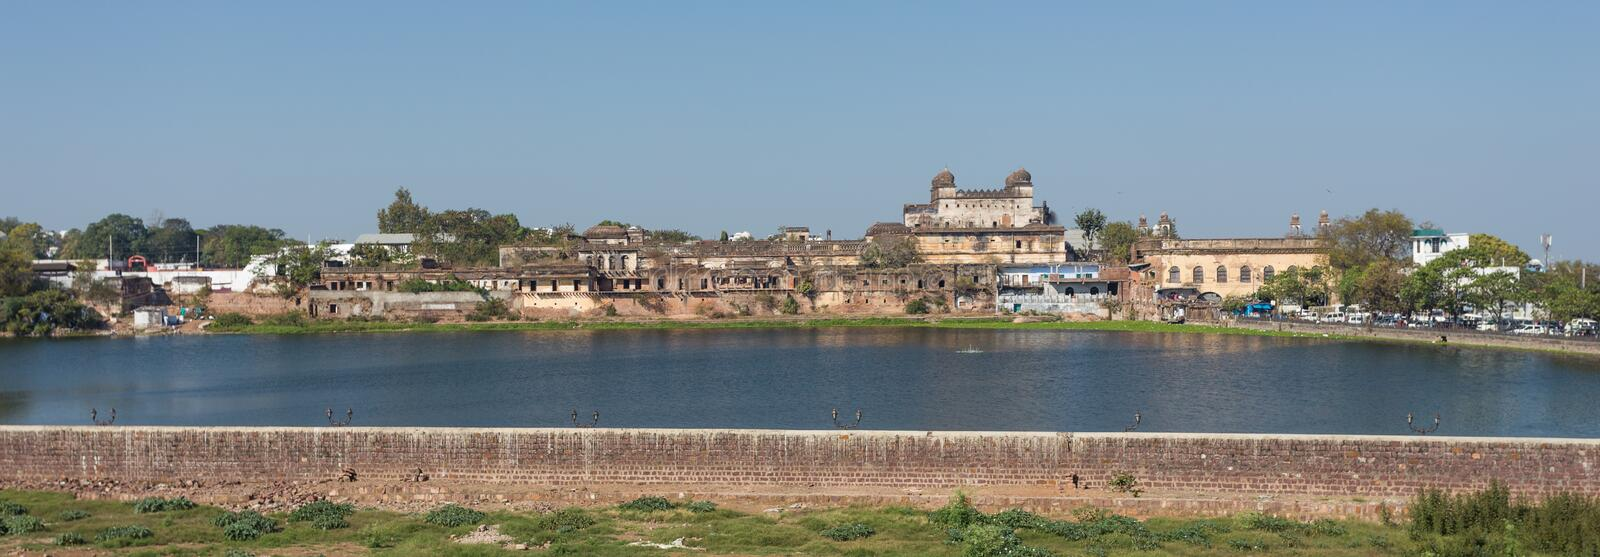 Panorama view of the Bhopal, city in India. / madhya prades district stock photos